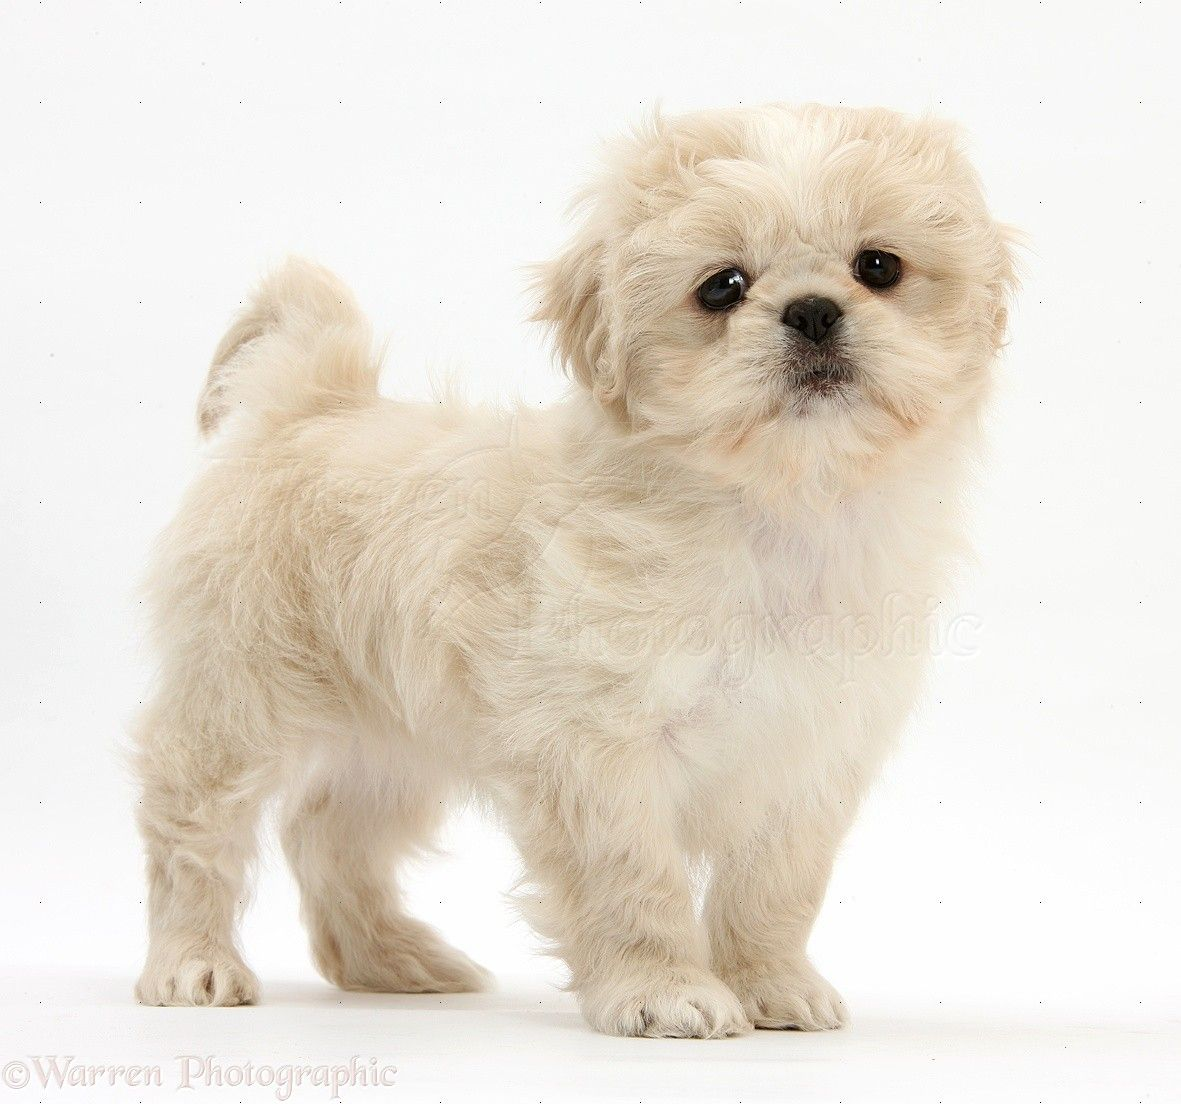 Wp38134 Cream Shih Tzu Pup Lilly 7 Weeks Old Standing Shih